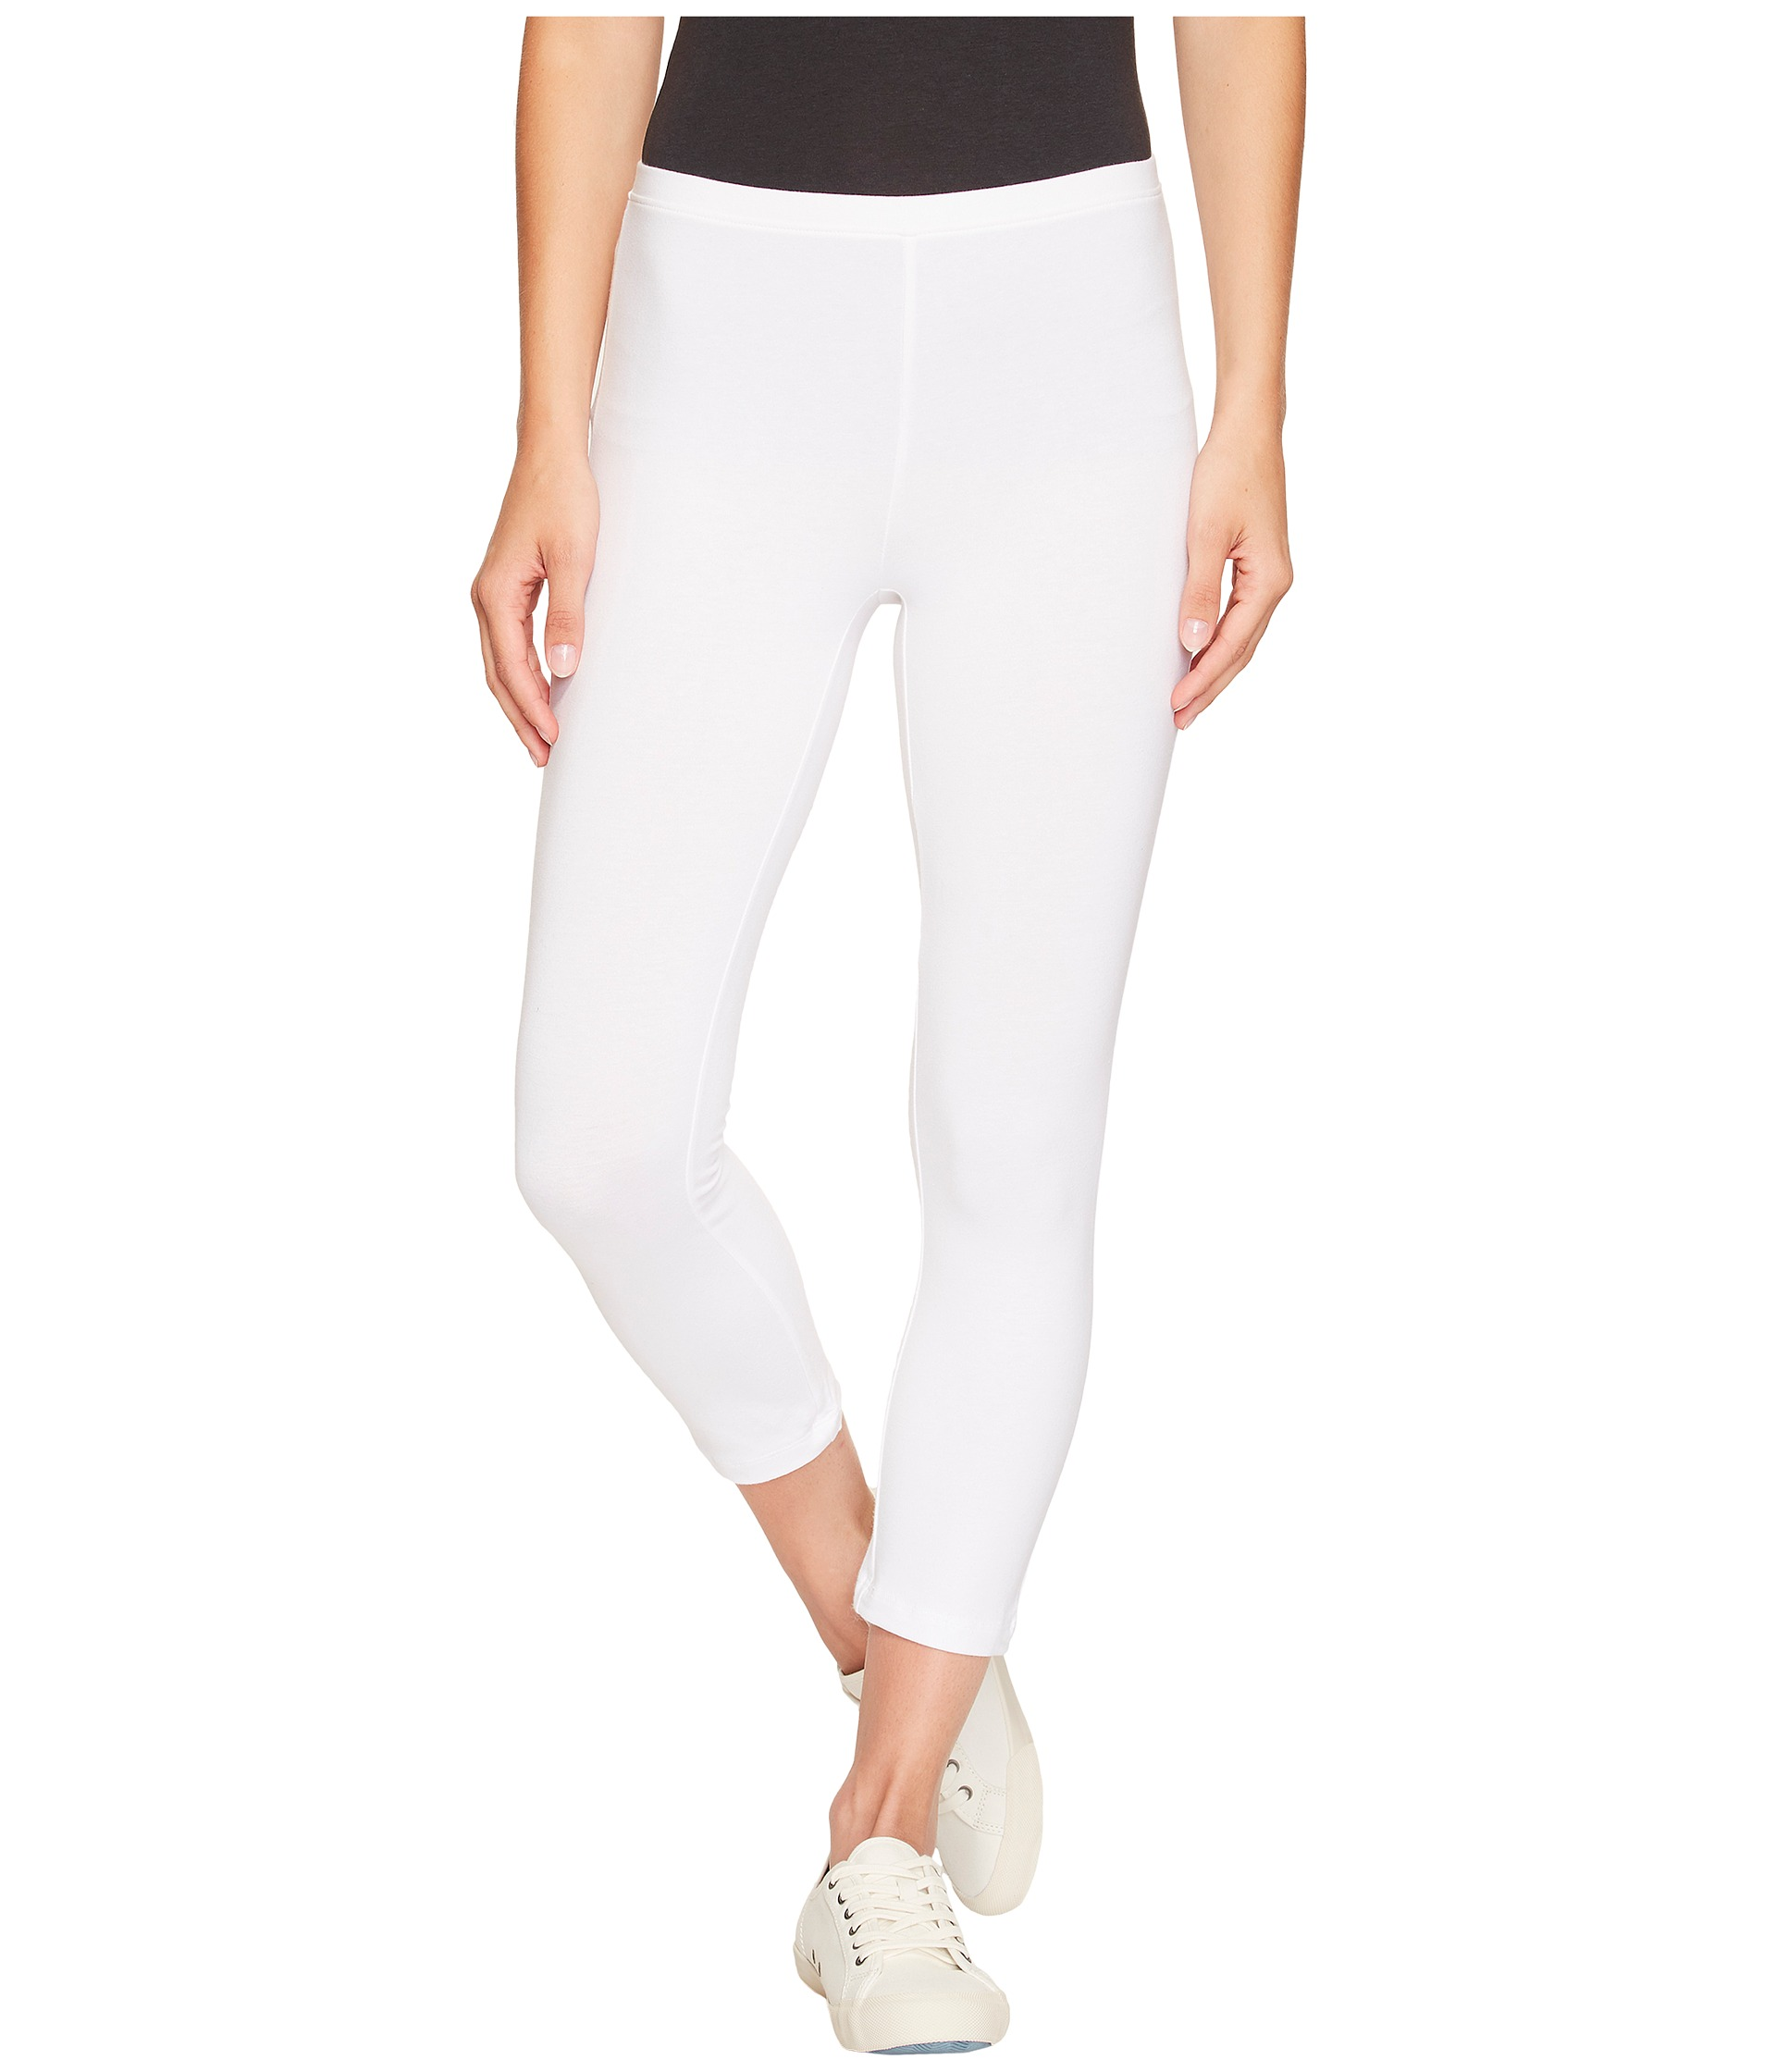 HUE Cotton Capri Legging - Zappos.com Free Shipping BOTH Ways